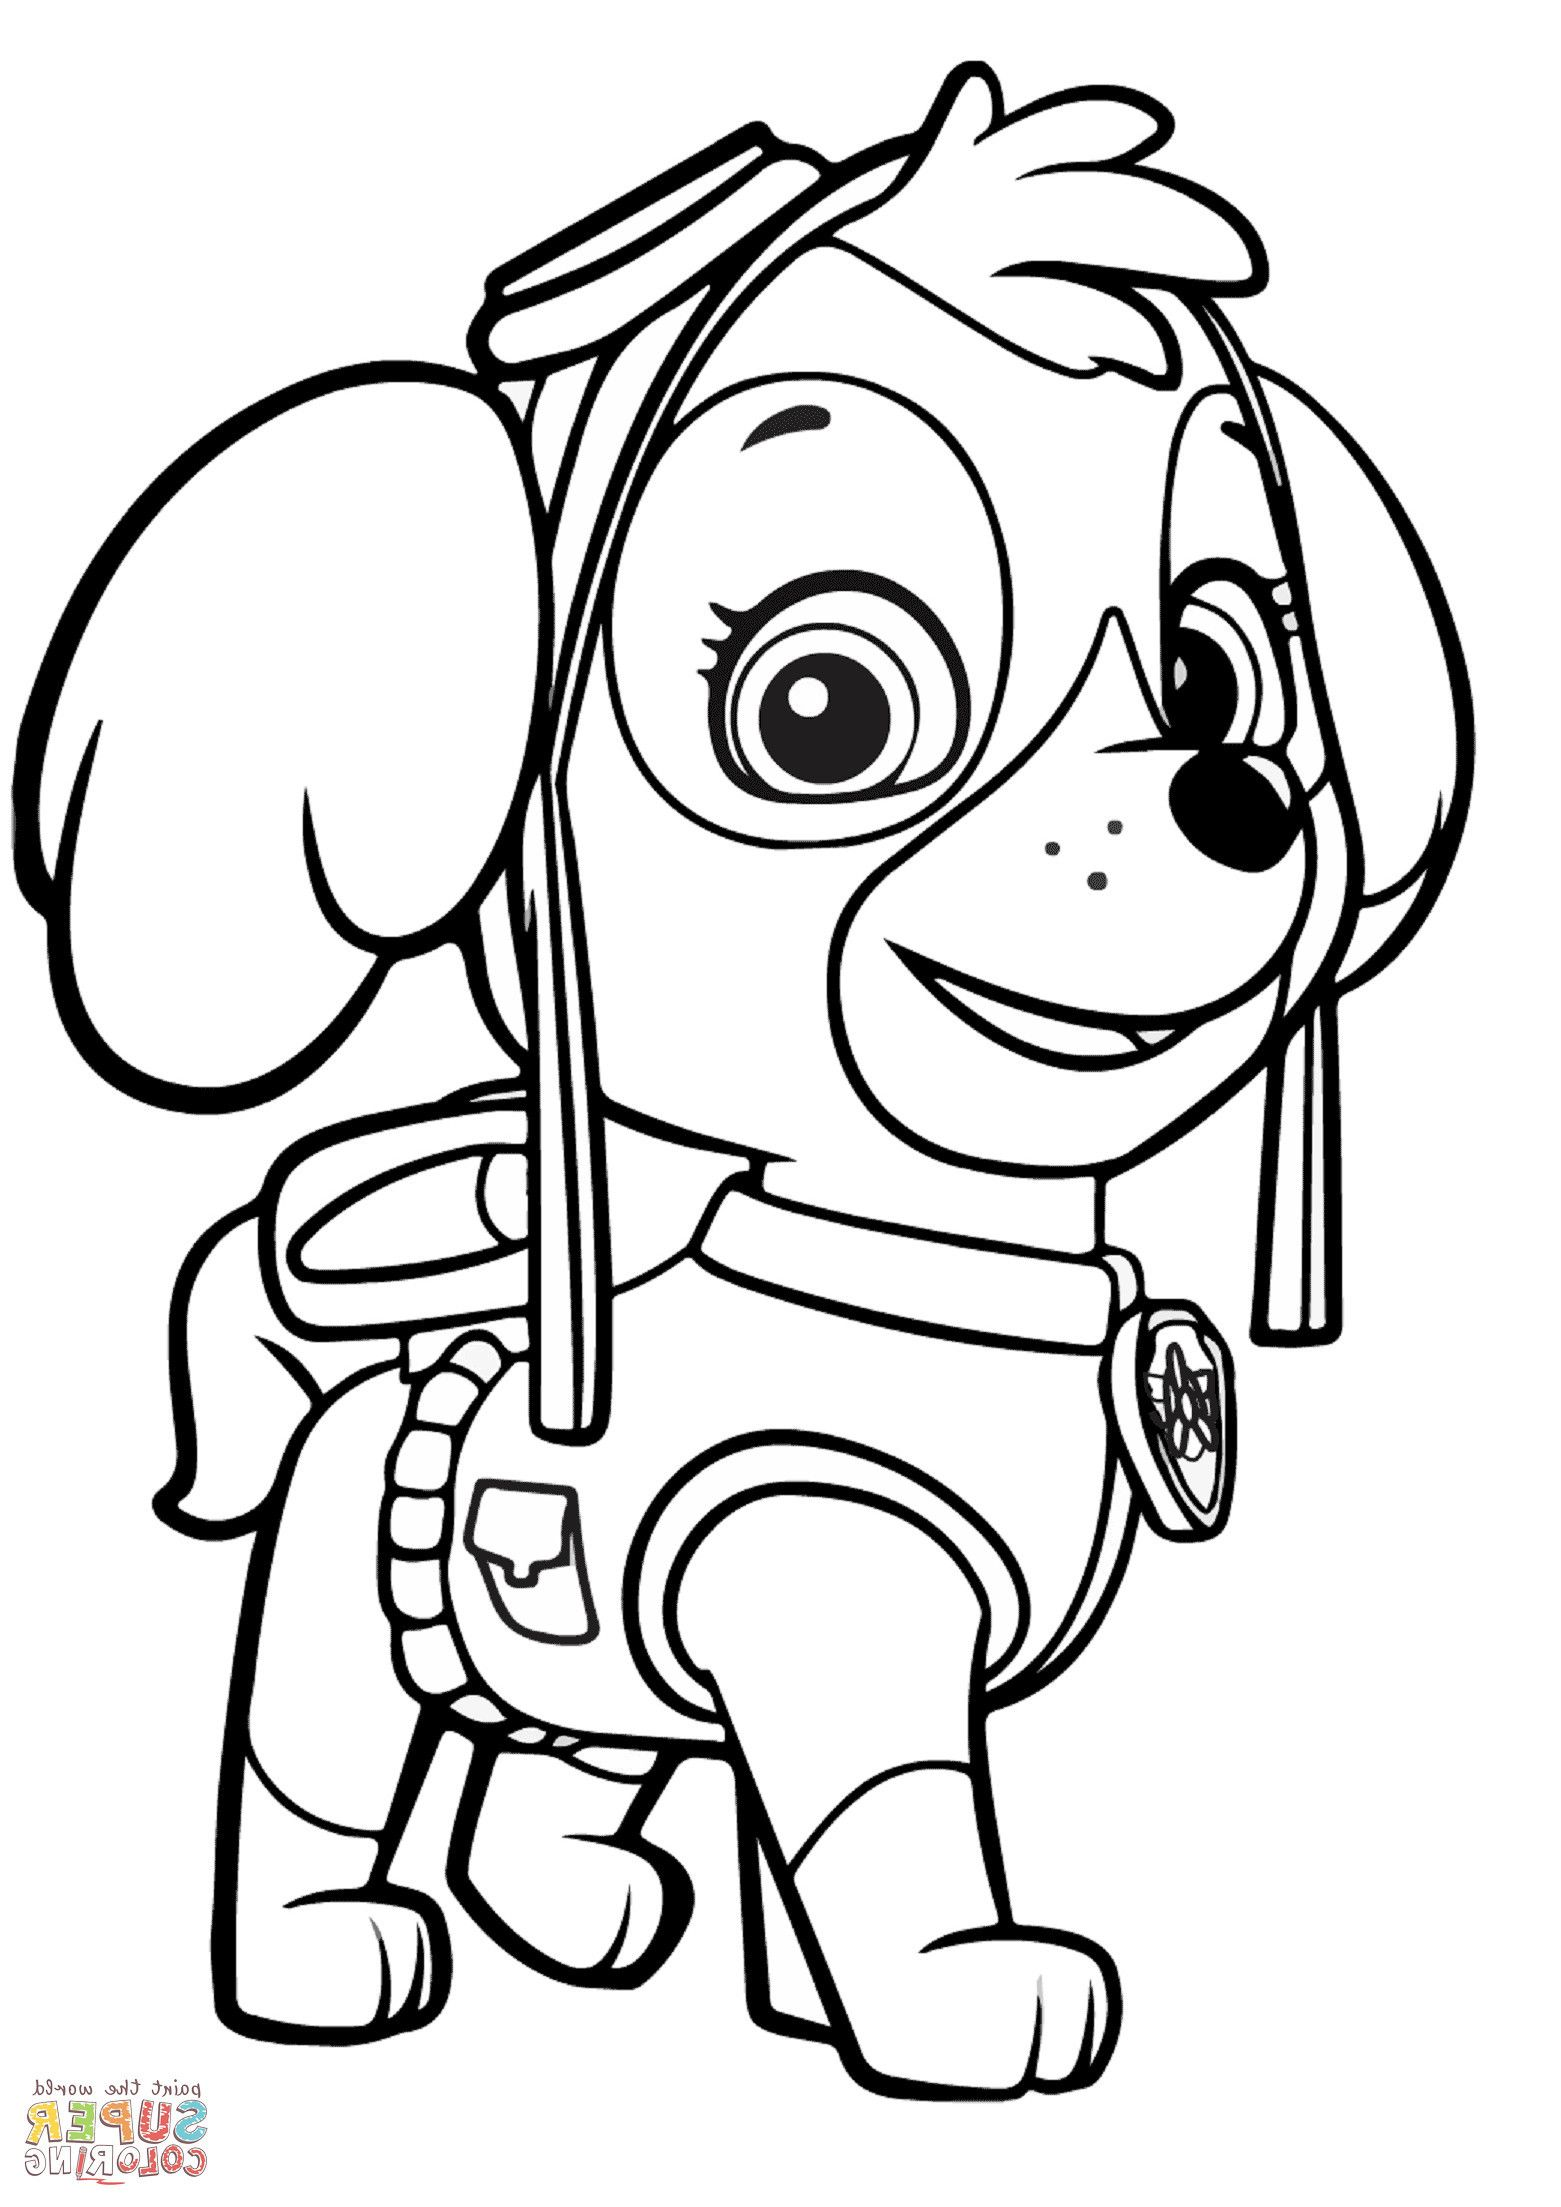 Image Result For Skye Coloring Page Paw Patrol Coloring Paw Patrol Coloring Pages Paw Patrol Printables